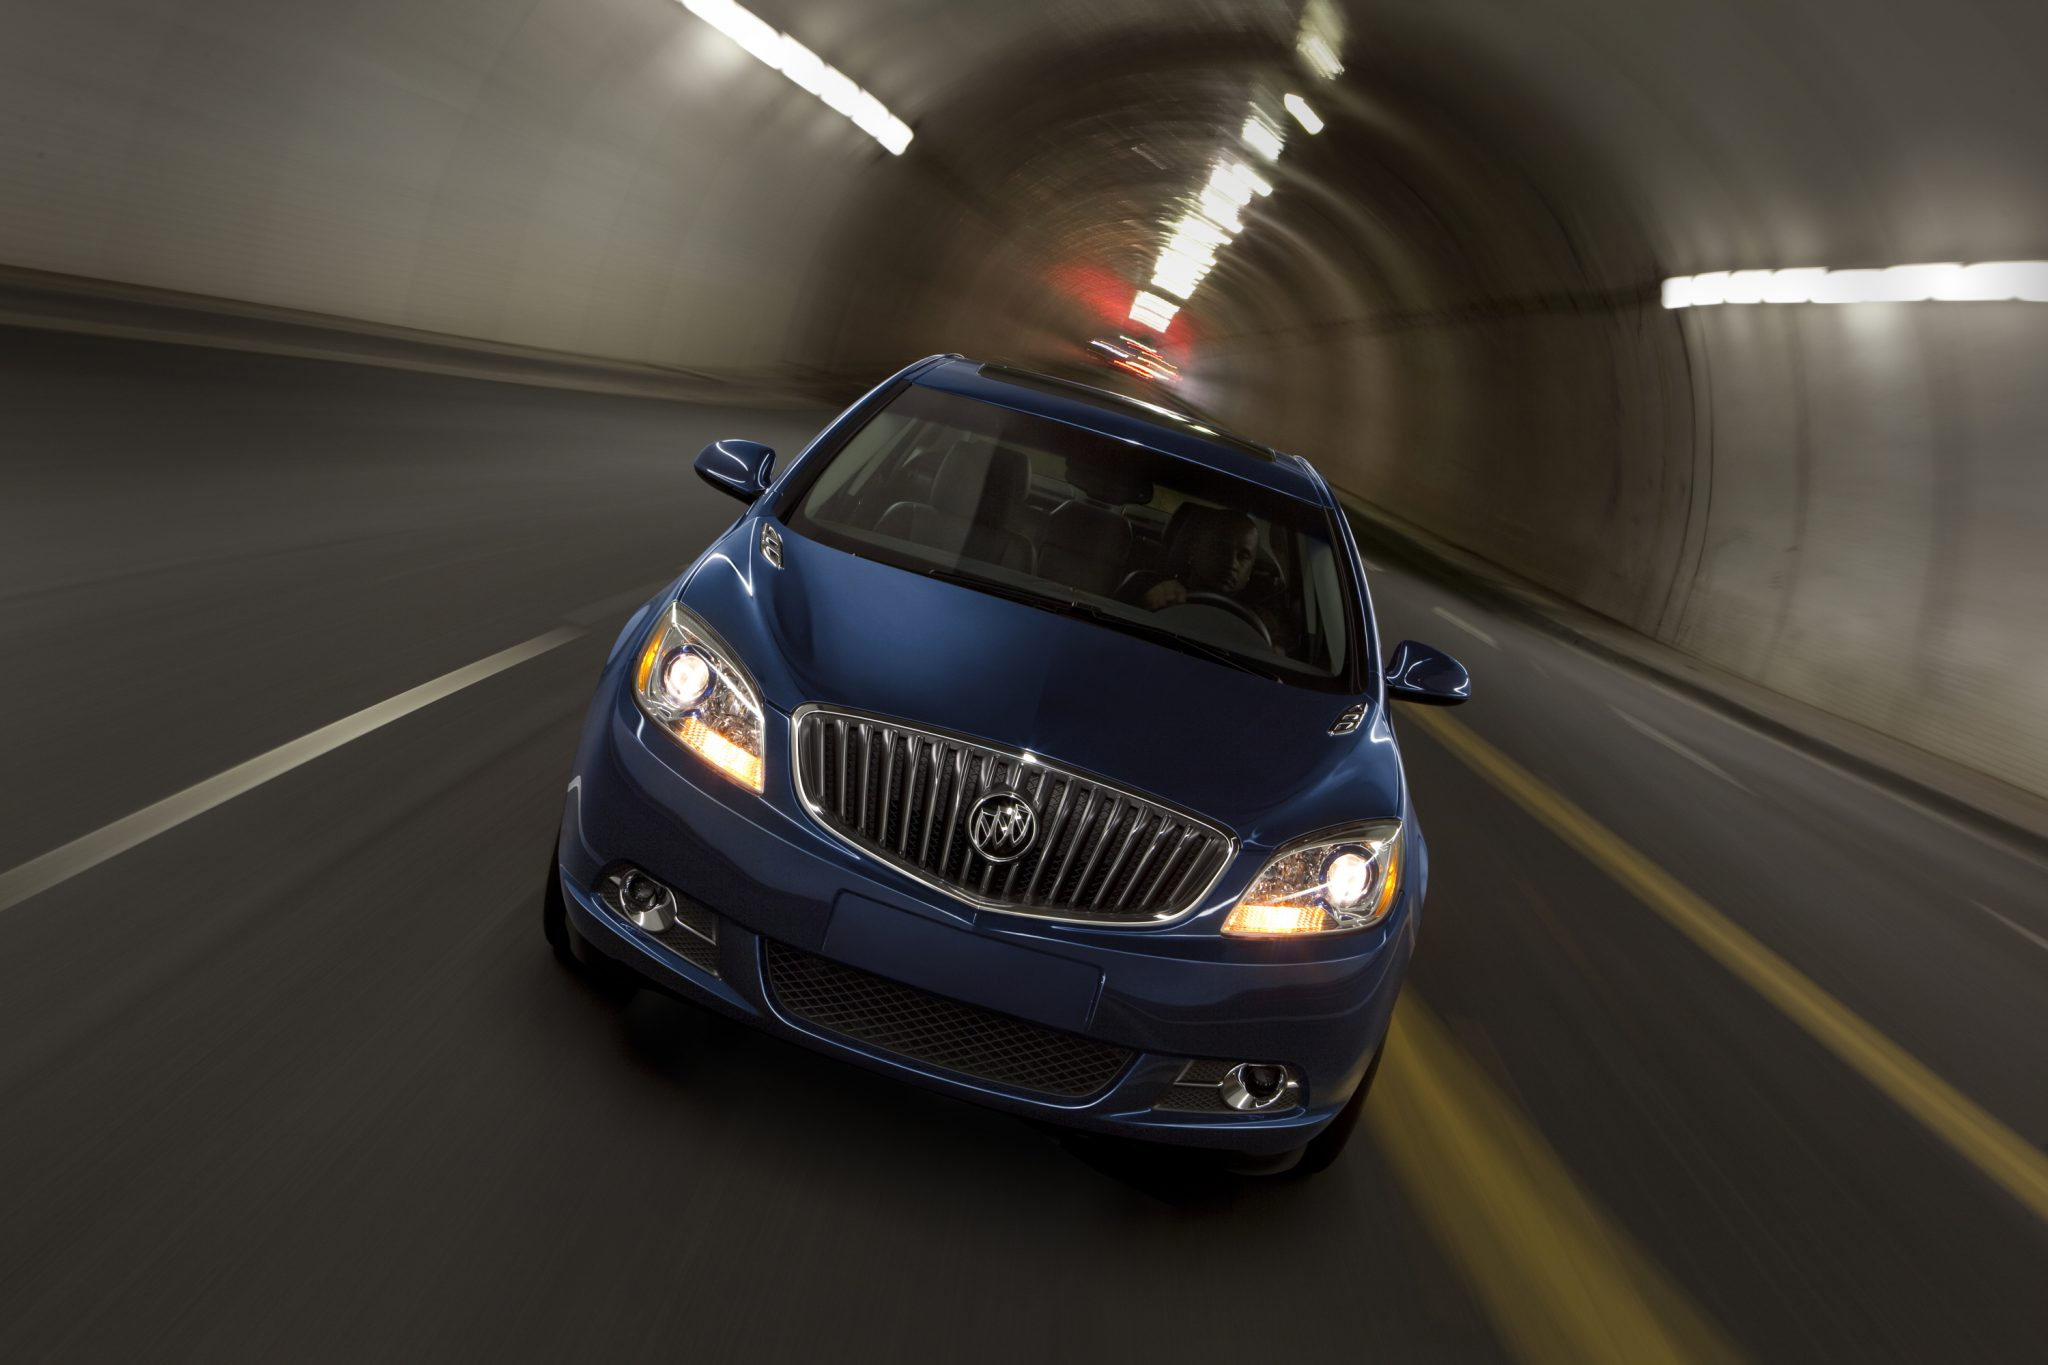 2015 Buick Verano is priced lower